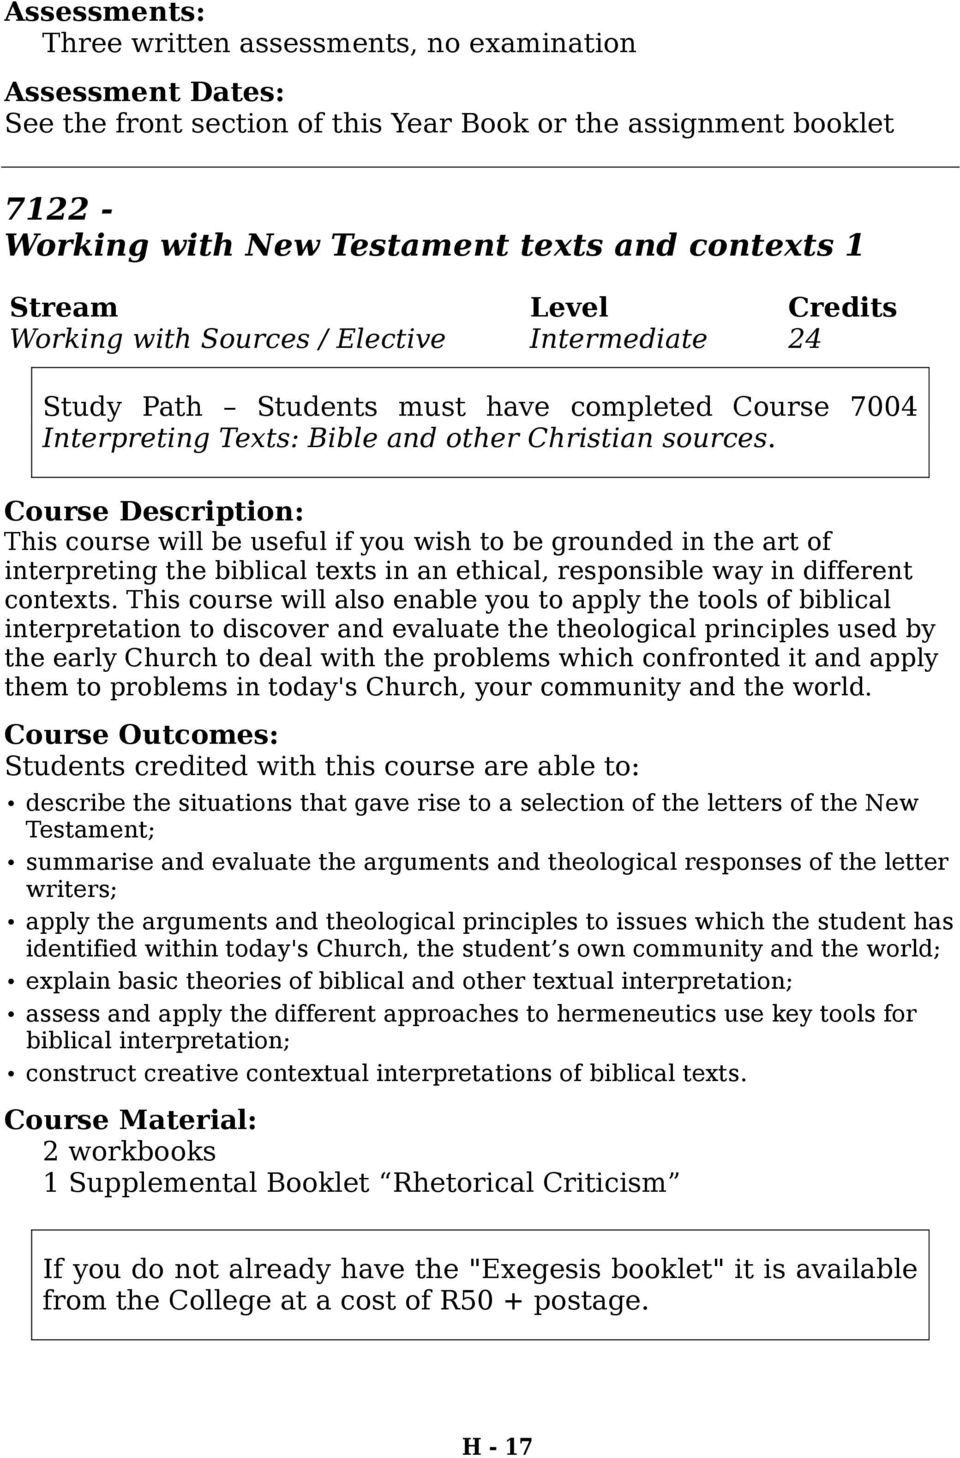 introduction to biblical interpretation pdf